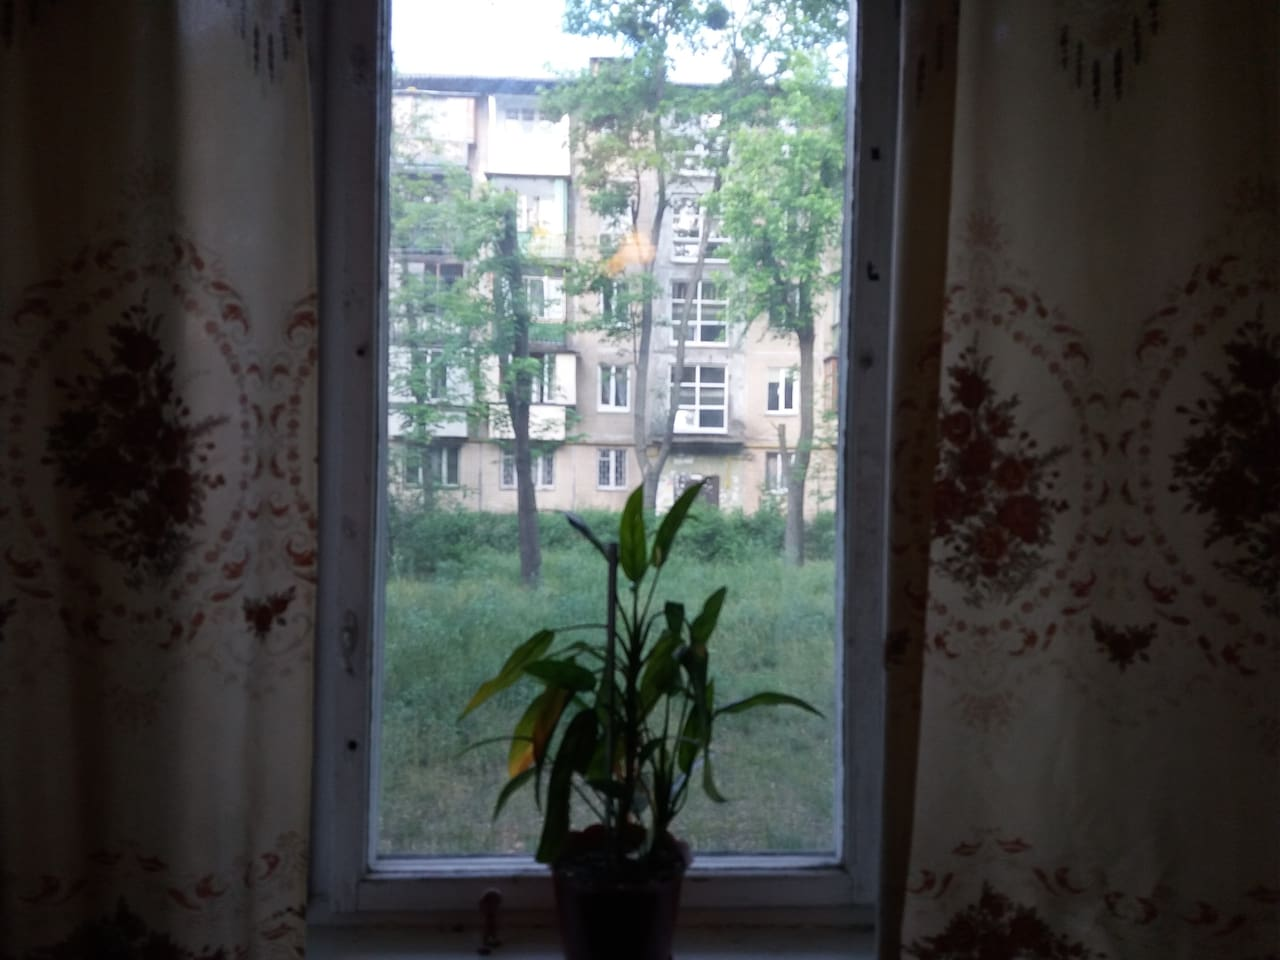 Bedroom. The window faces another identical five-storey building